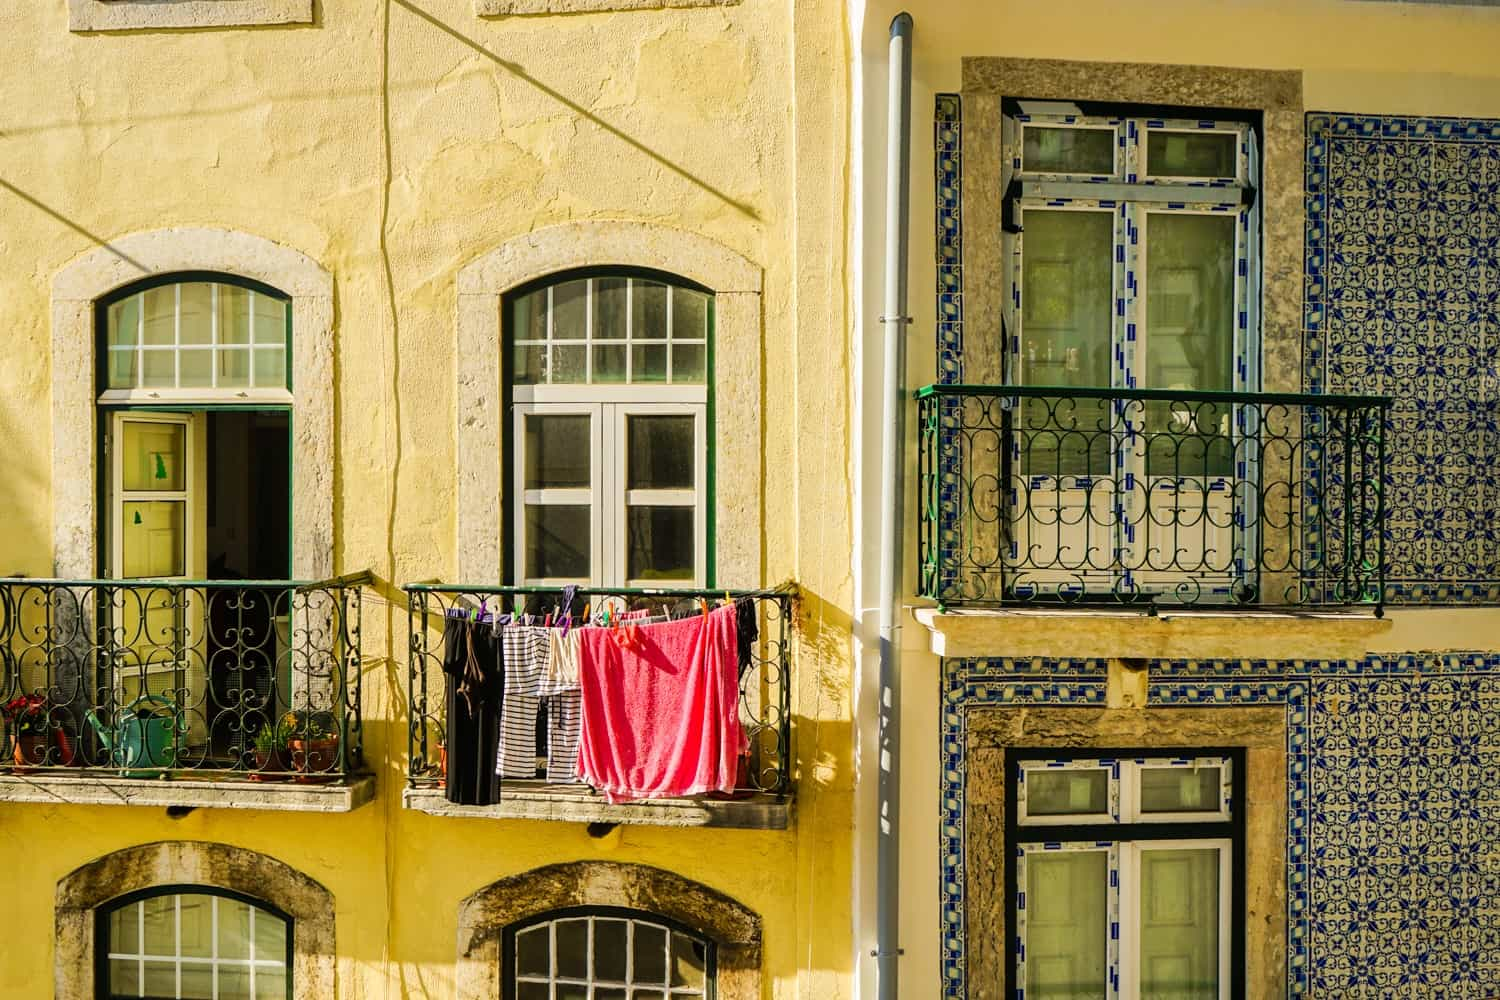 Lisbon windows with laundry